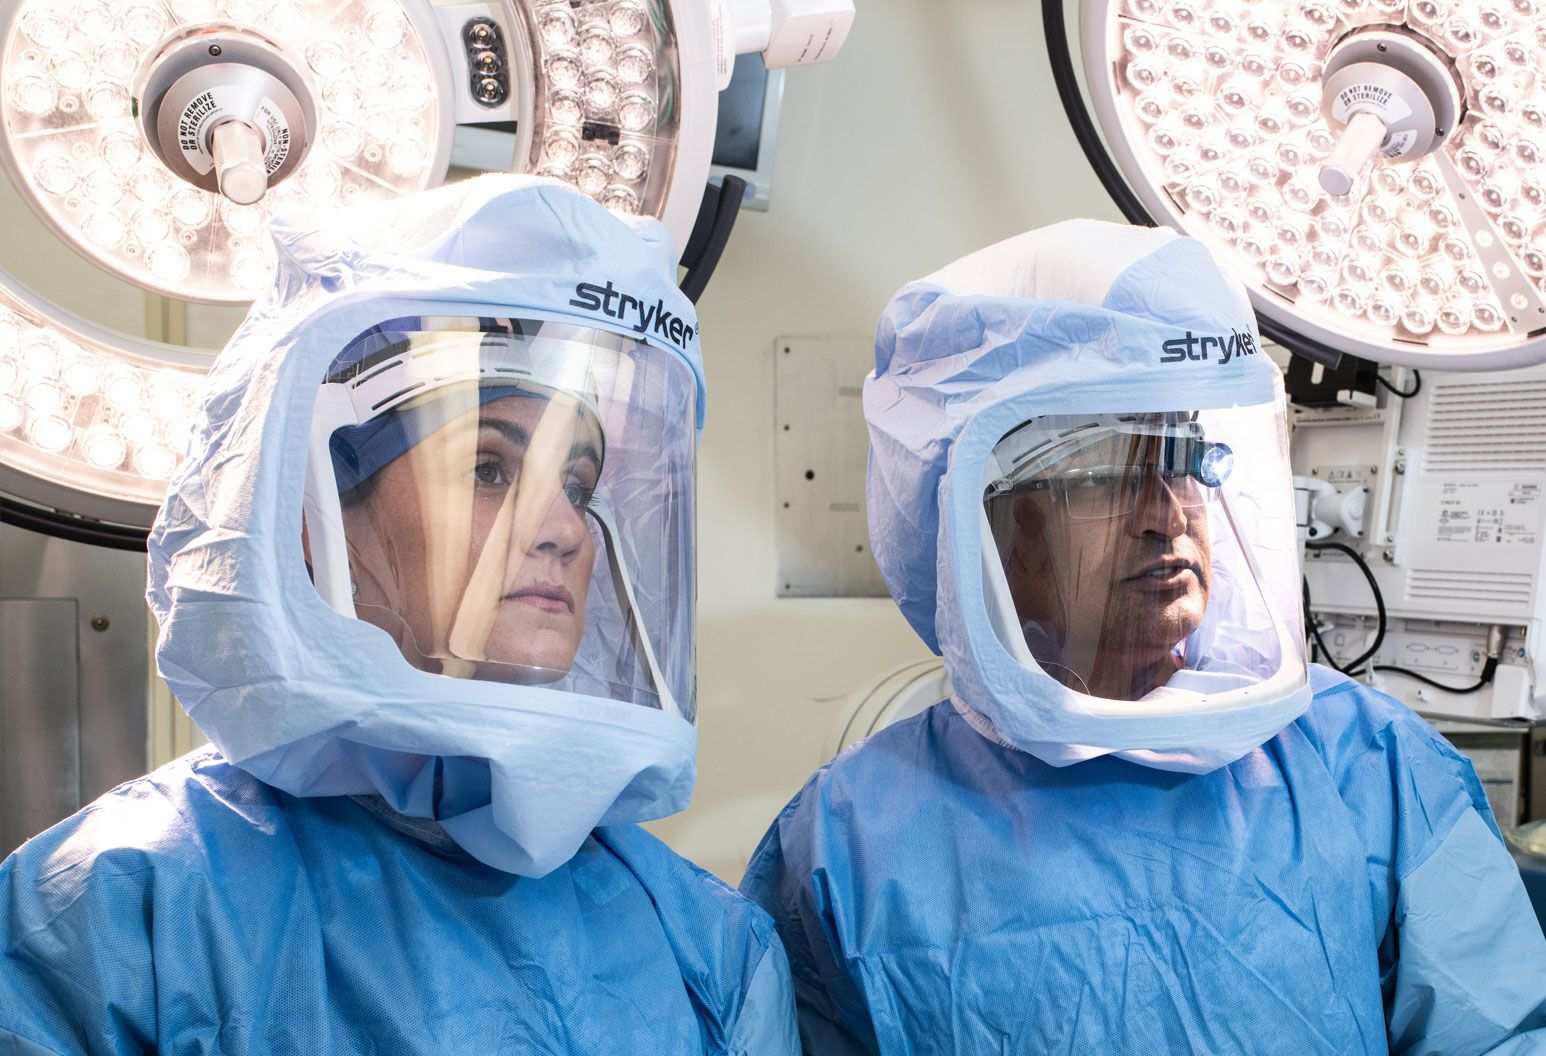 Two doctors - male and female - are in the operating room wearing masks and operating room gear.